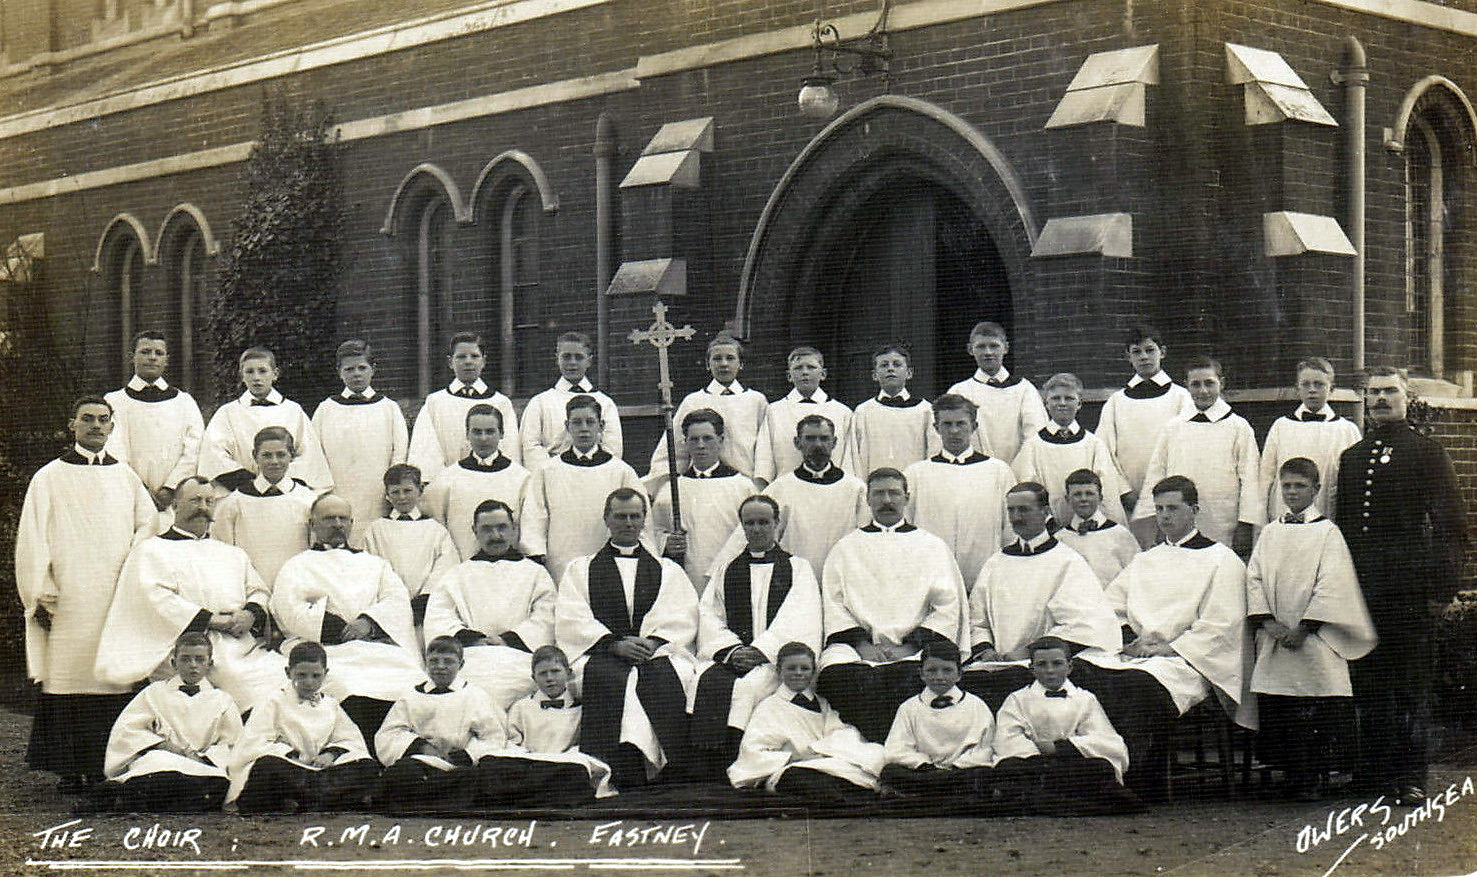 Eastney  Royal Marine Artillery Church, 1920